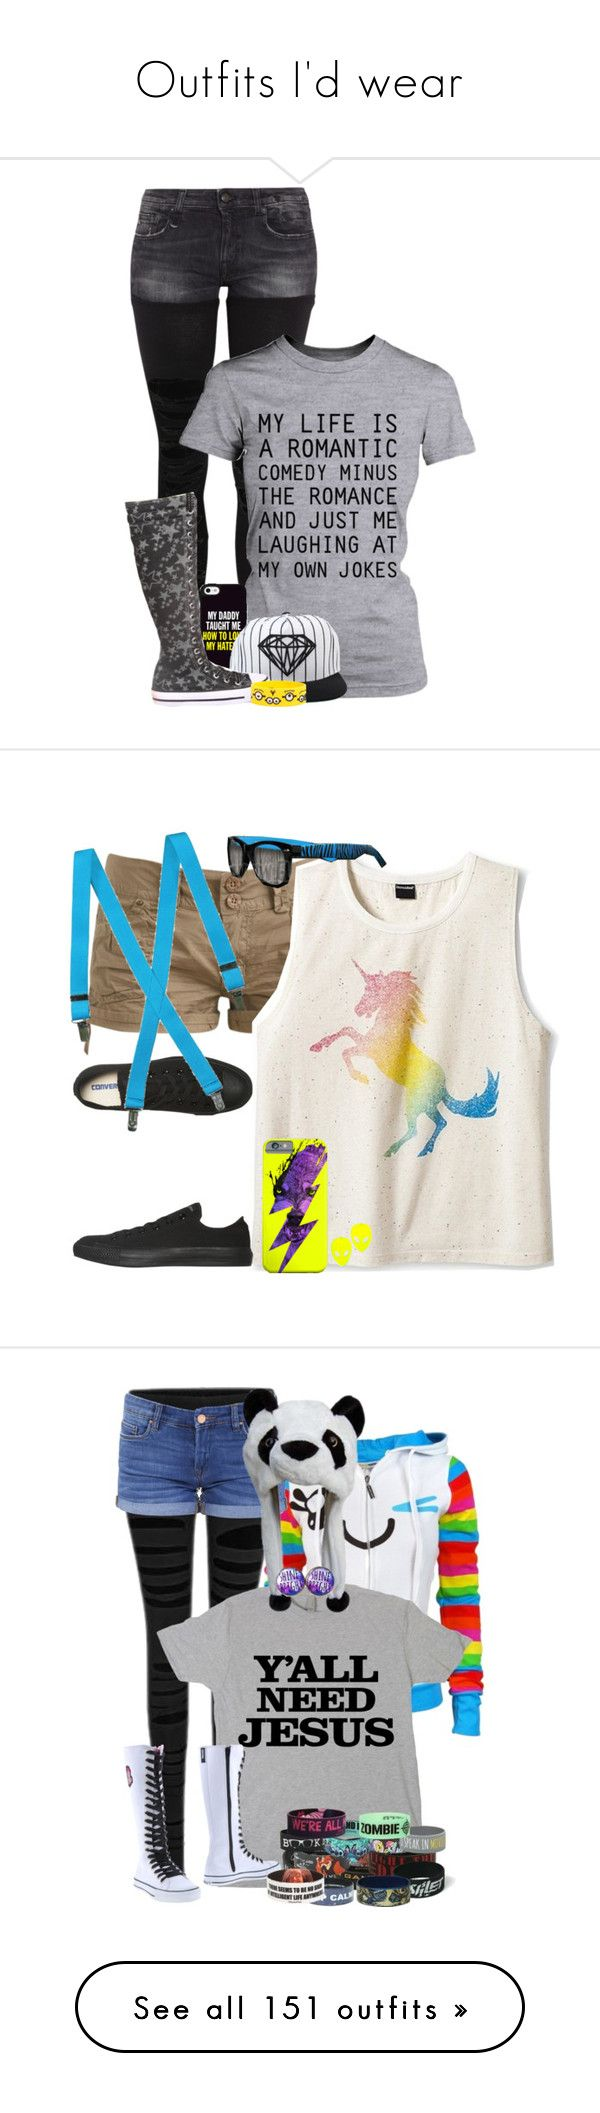 """Outfits I'd wear"" by the-l0st-girl ❤ liked on Polyvore featuring ThisIsMeTheDJ, R13, Diamond Supply Co., Wet Seal, Converse, Hollywood Mirror, BLANKNYC, Cover Your Bones, Disney and My Little Pony"